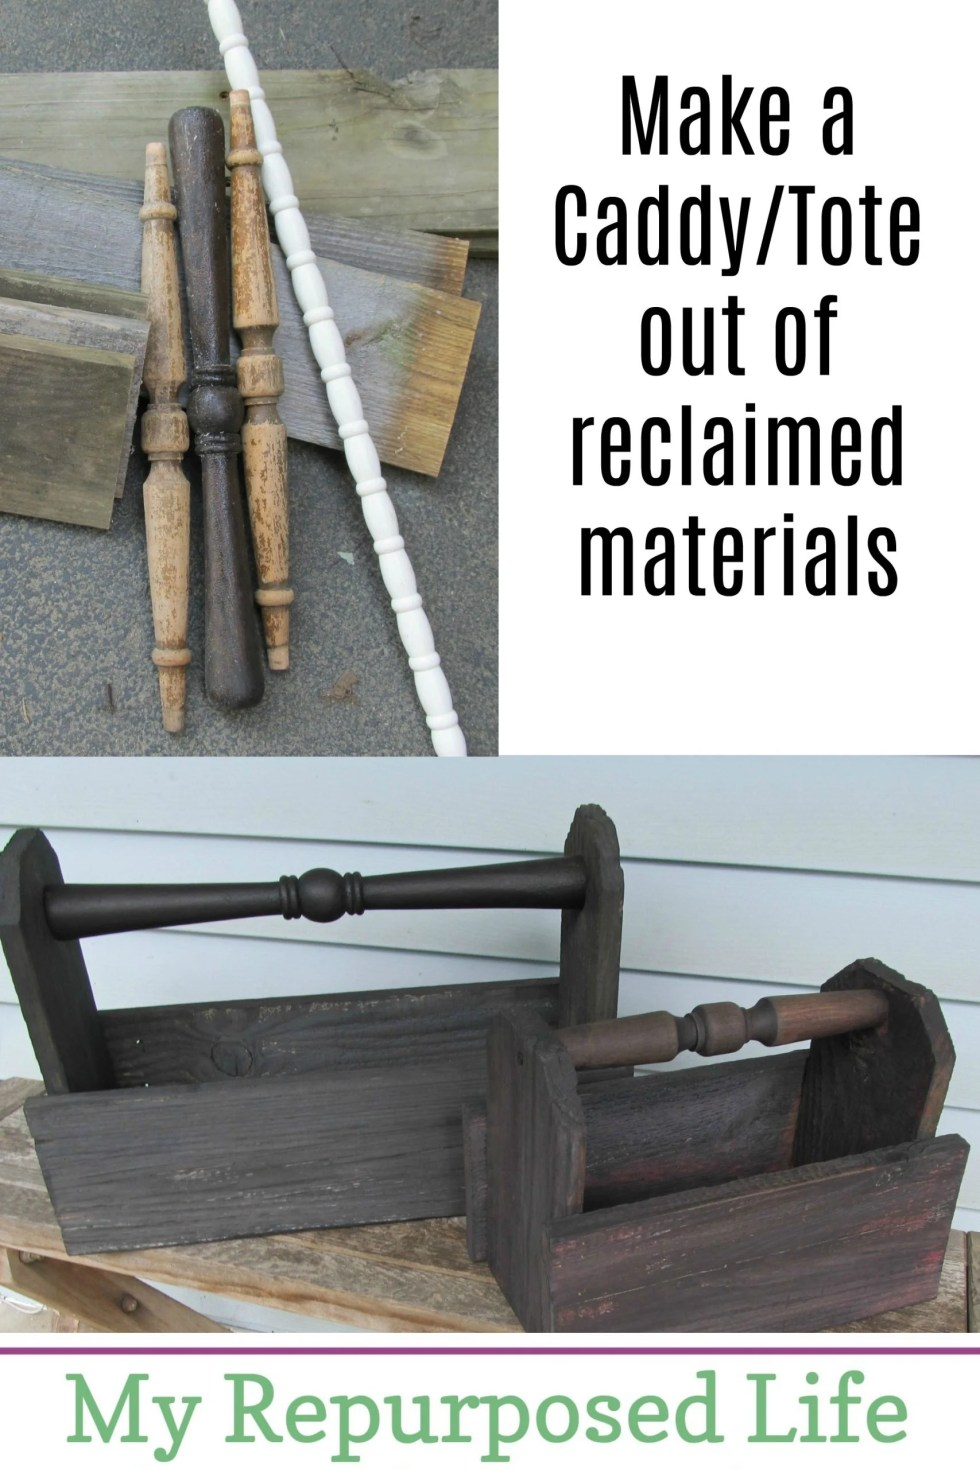 How to make a diy wooden caddy using reclaimed materials such as fencing and chair parts. Step by step tutorial so you can make one of these today! #MyRepurposedLife #relcaimed #fence #spindles #wooden #caddy via @repurposedlife